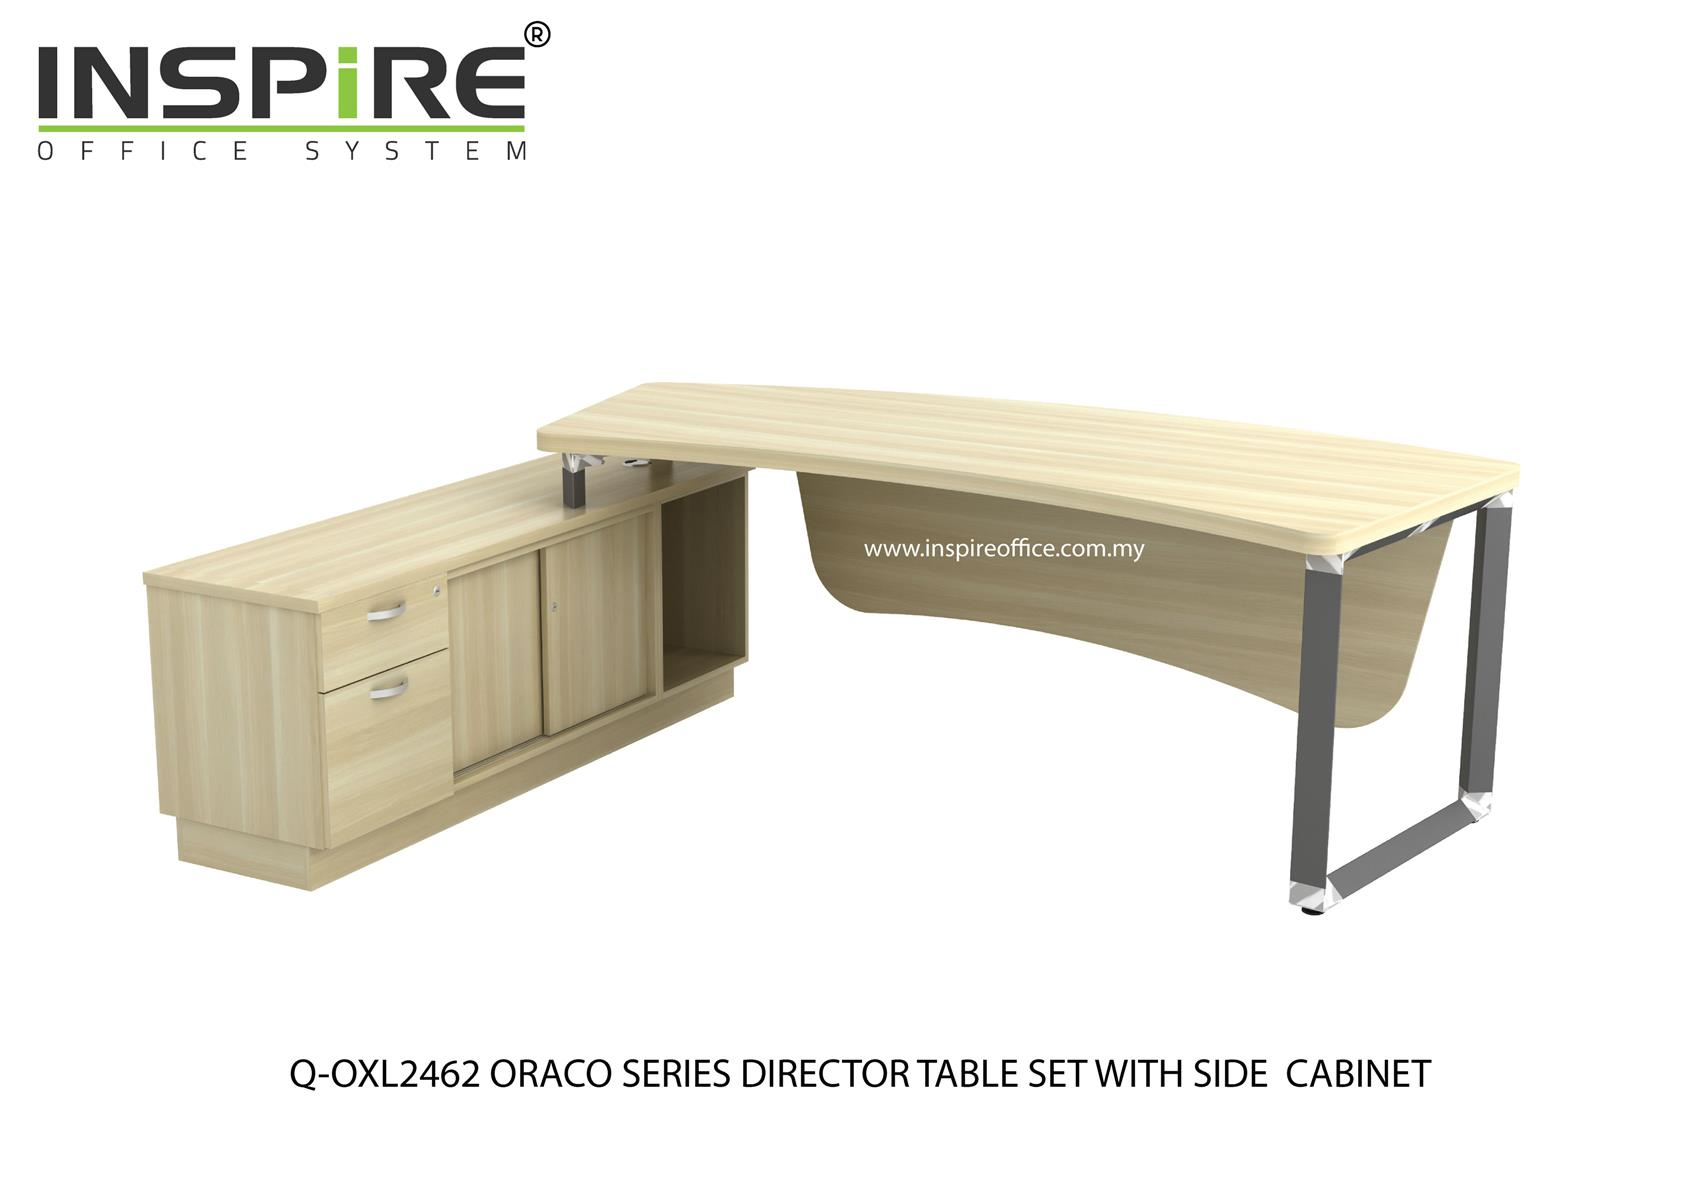 Q-OXL2462 ORACO SERIES DIRECTOR TABLE SET WITH SIDE CABINET (TABLE TOP